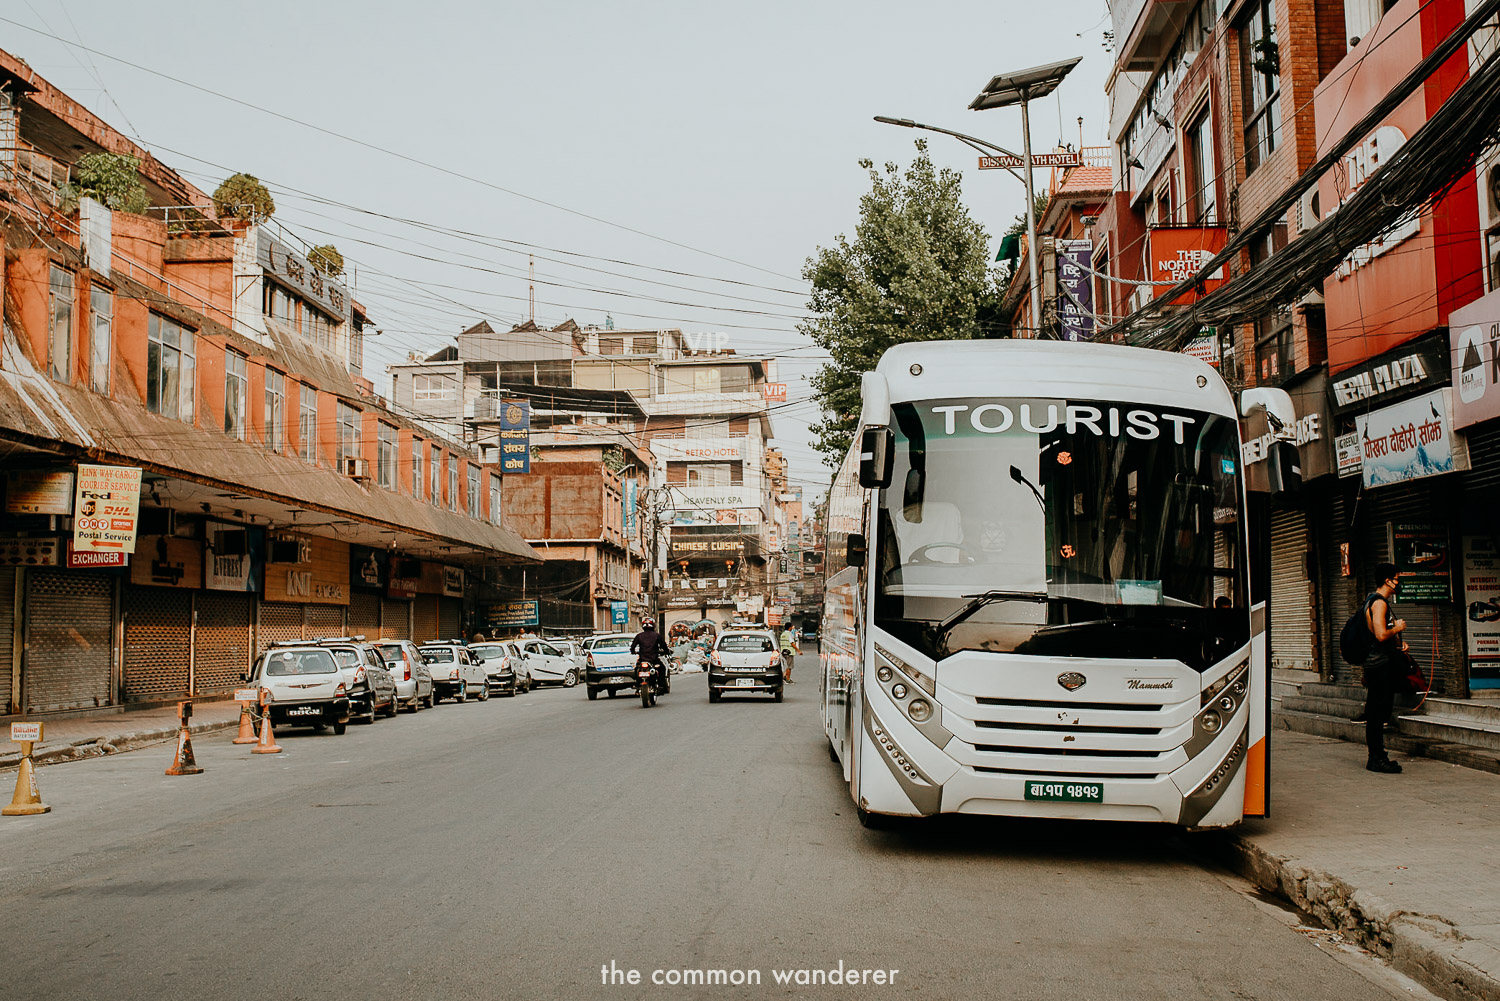 The Greenline depart point for the Kathmandu to Pokhara service